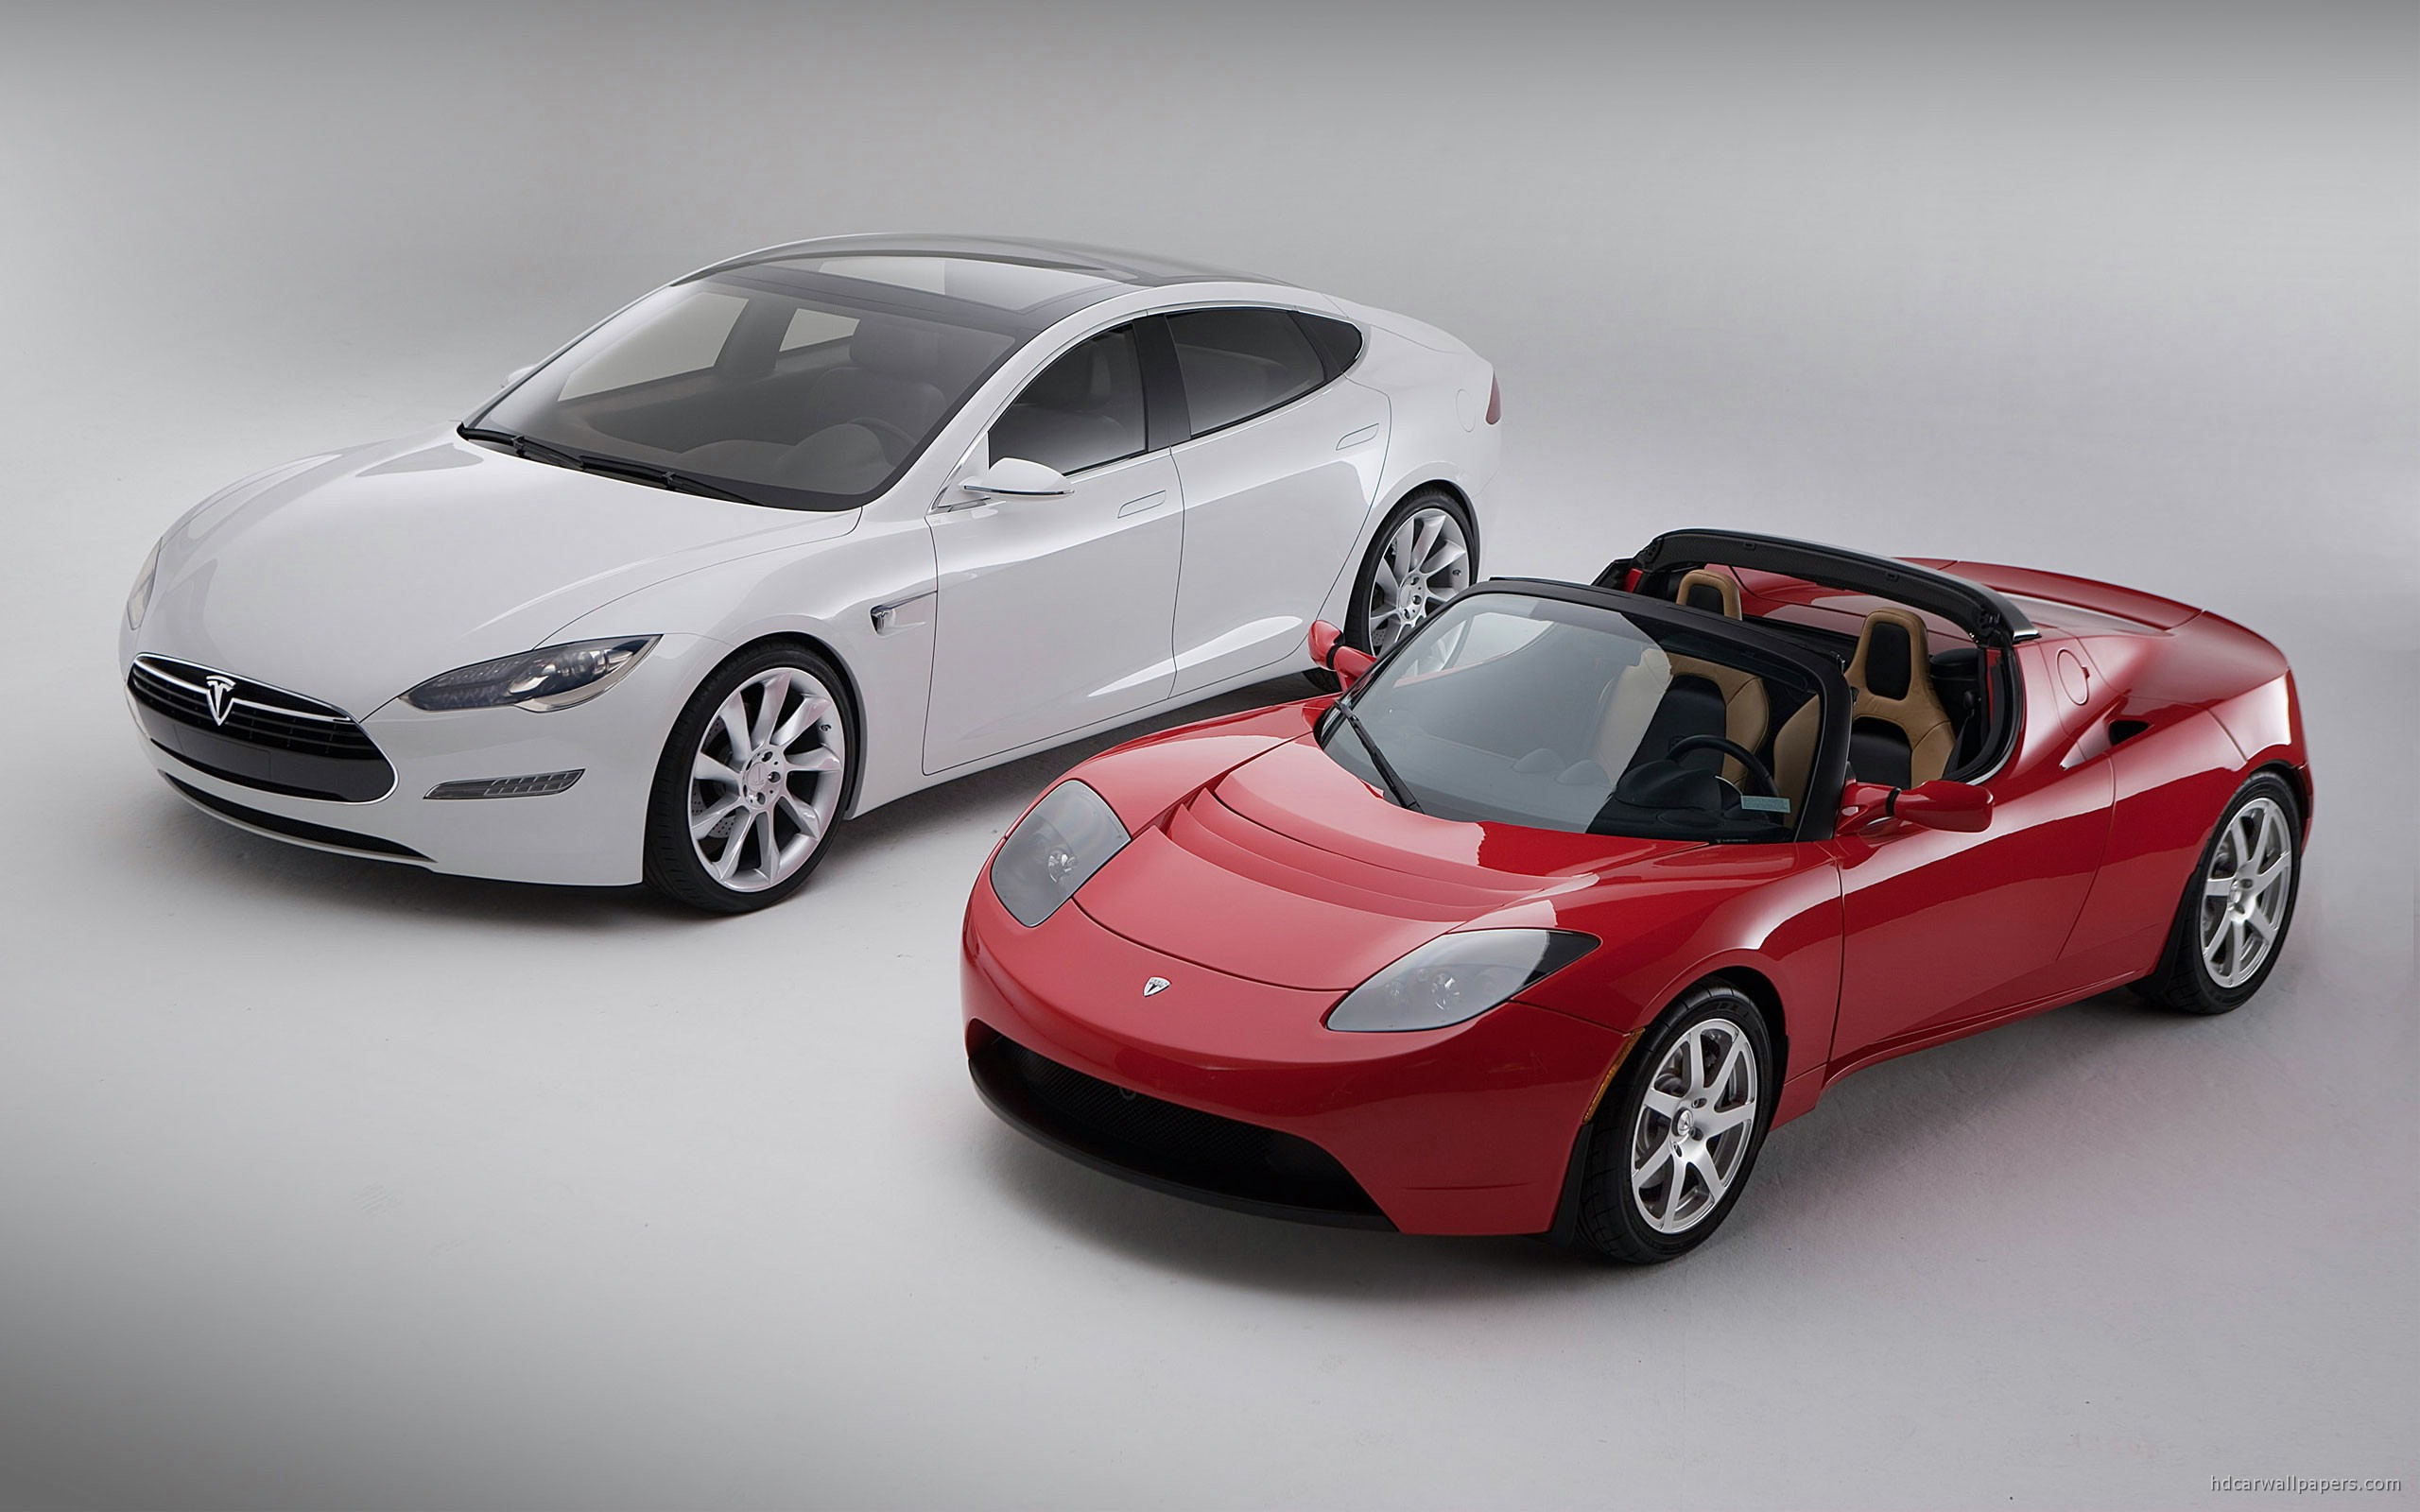 tesla model s cars wallpaper hd car wallpapers. Black Bedroom Furniture Sets. Home Design Ideas